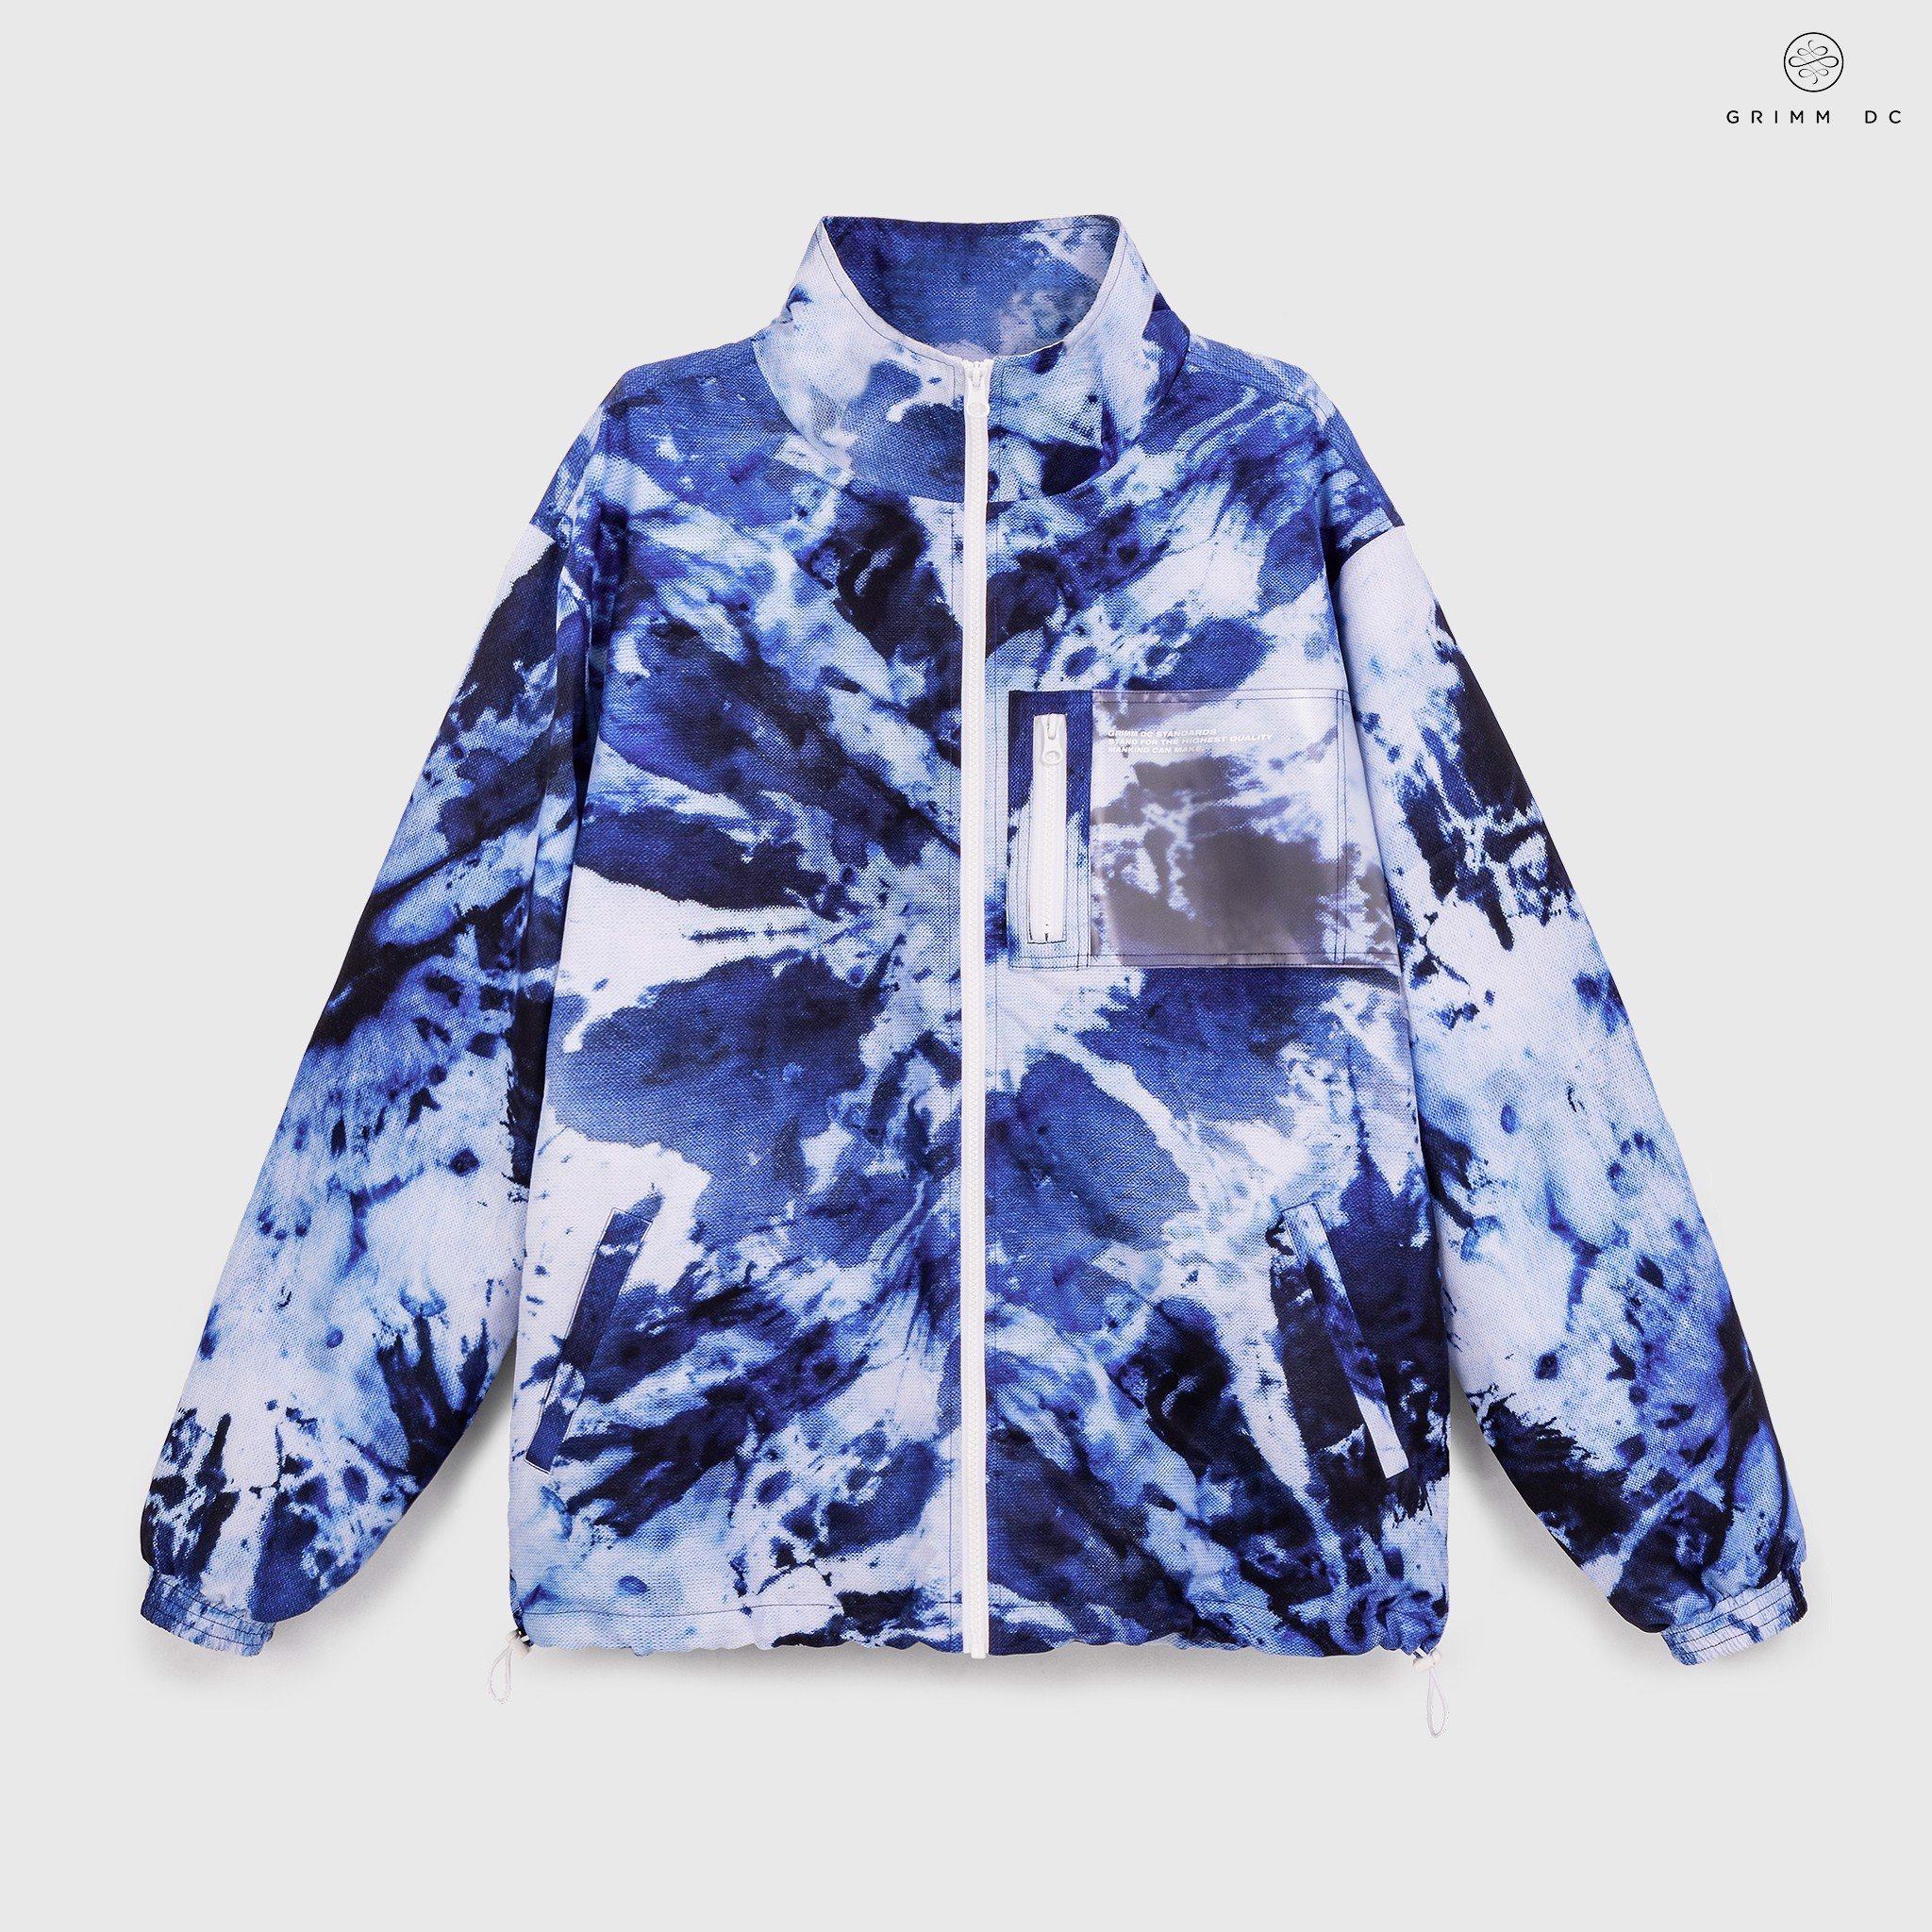 Tie-dye windbreaker jacket - Thermal Frost // Xanh biển